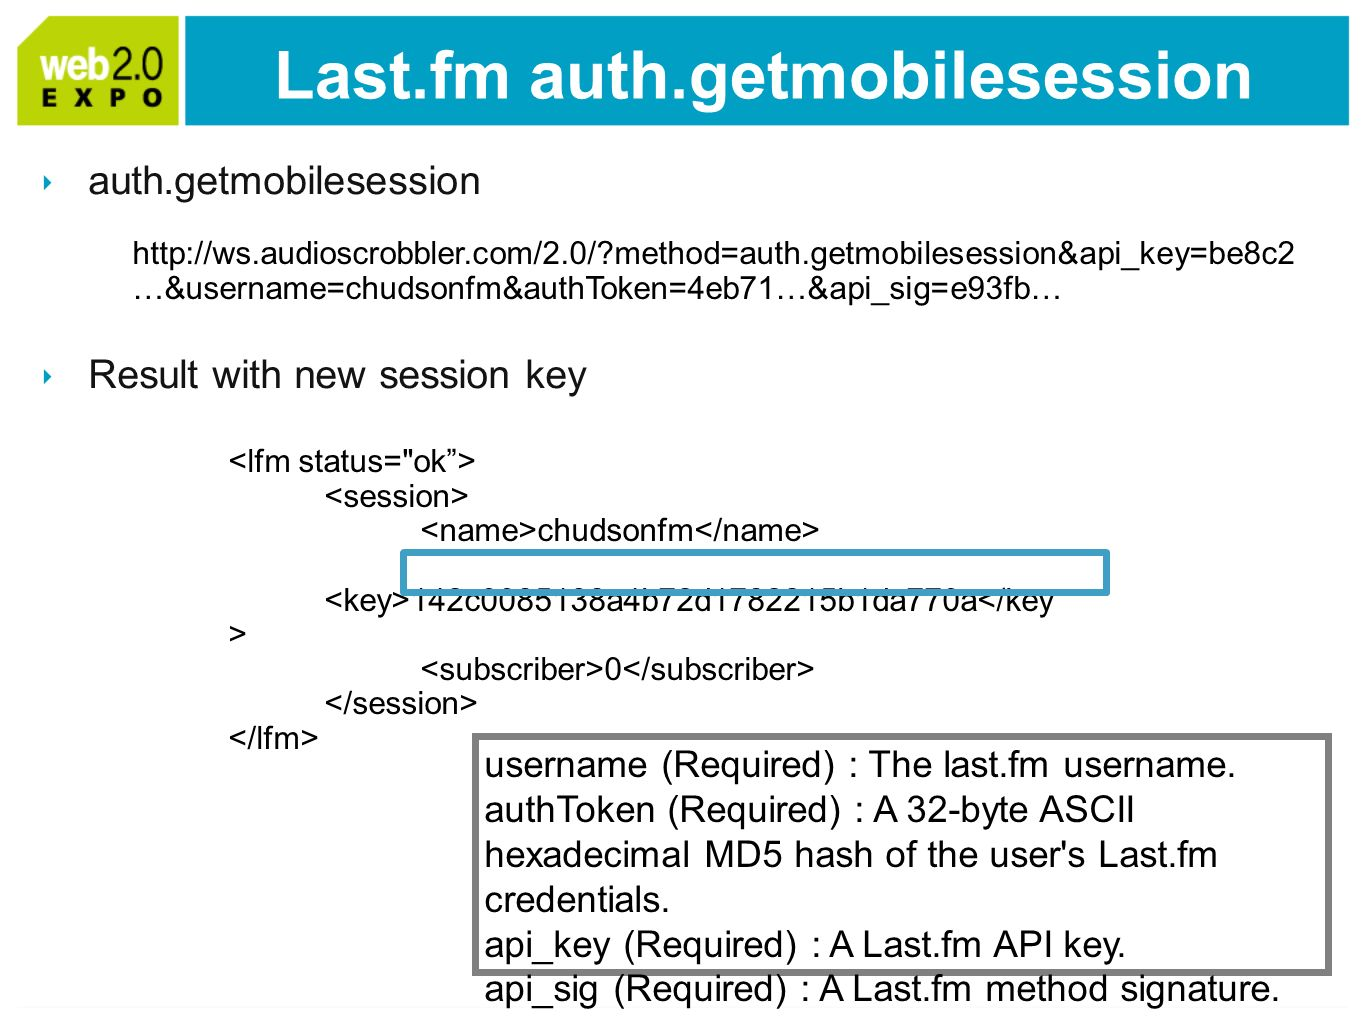 Last.fm auth.getmobilesession auth.getmobilesession Result with new session key http://ws.audioscrobbler.com/2.0/ method=auth.getmobilesession&api_key=be8c2 …&username=chudsonfm&authToken=4eb71…&api_sig=e93fb… chudsonfm 142c0085138a4b72d1782215b1da770a 0 username (Required) : The last.fm username.